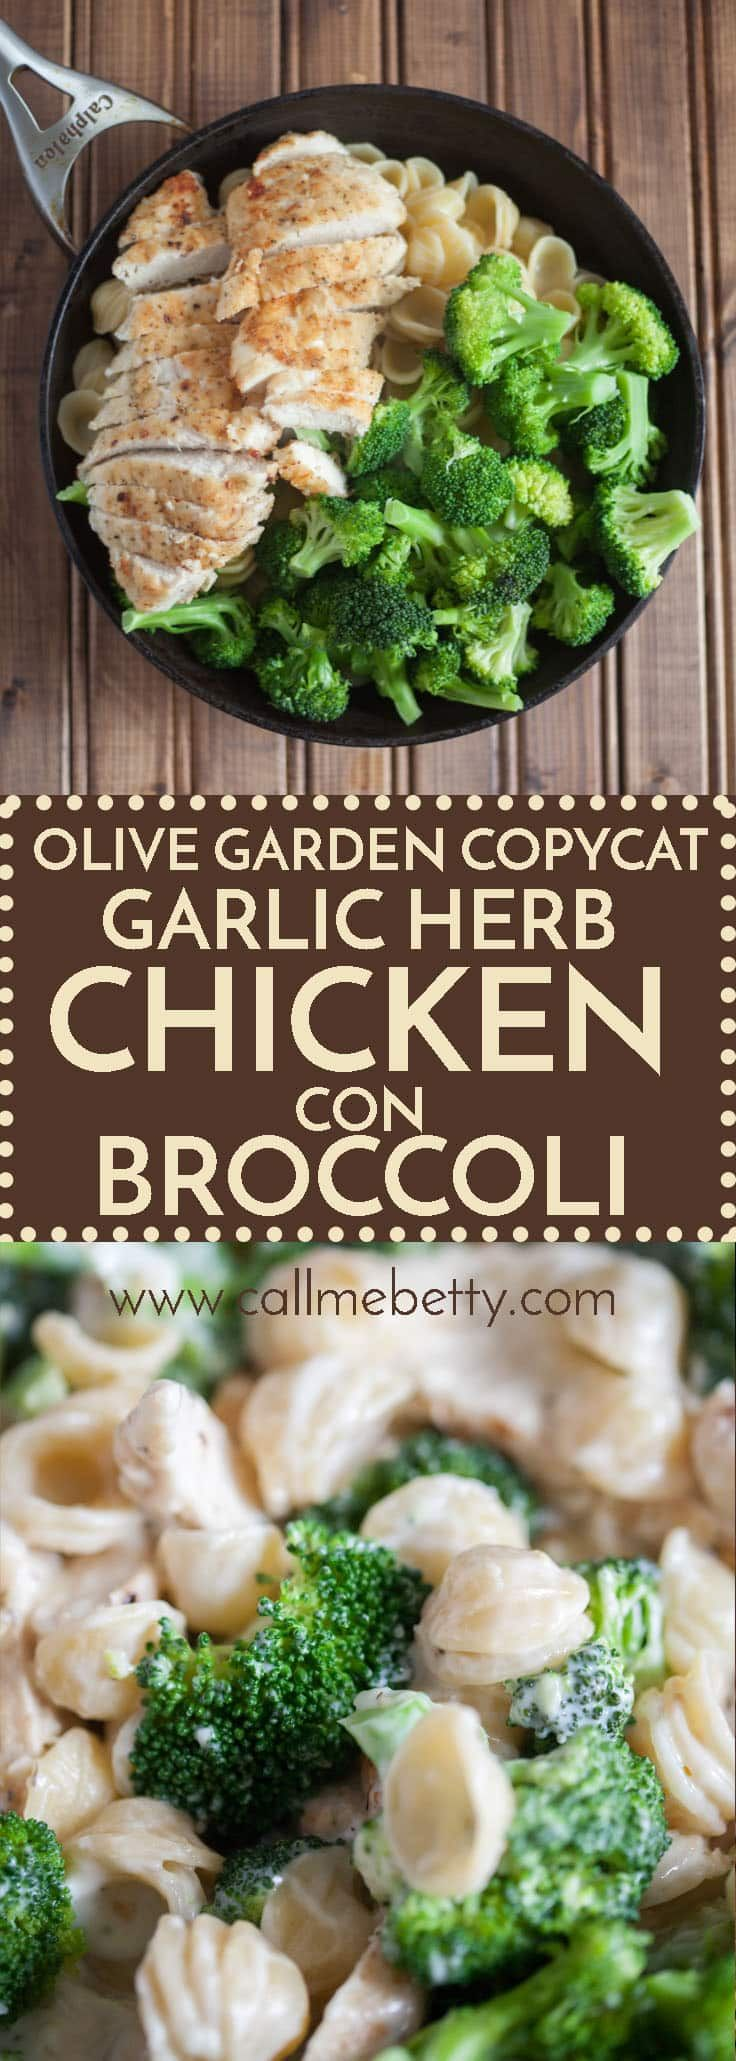 This garlic herb chicken con broccoli tastes just like the olive garden version and is easy to prepare at home.  The tasty seared and sauteed chicken breast, orechiette pasta, and garlic alfredo sauce make this decadent dish to die for.  We love this copycat dish. via @callmebettyblog